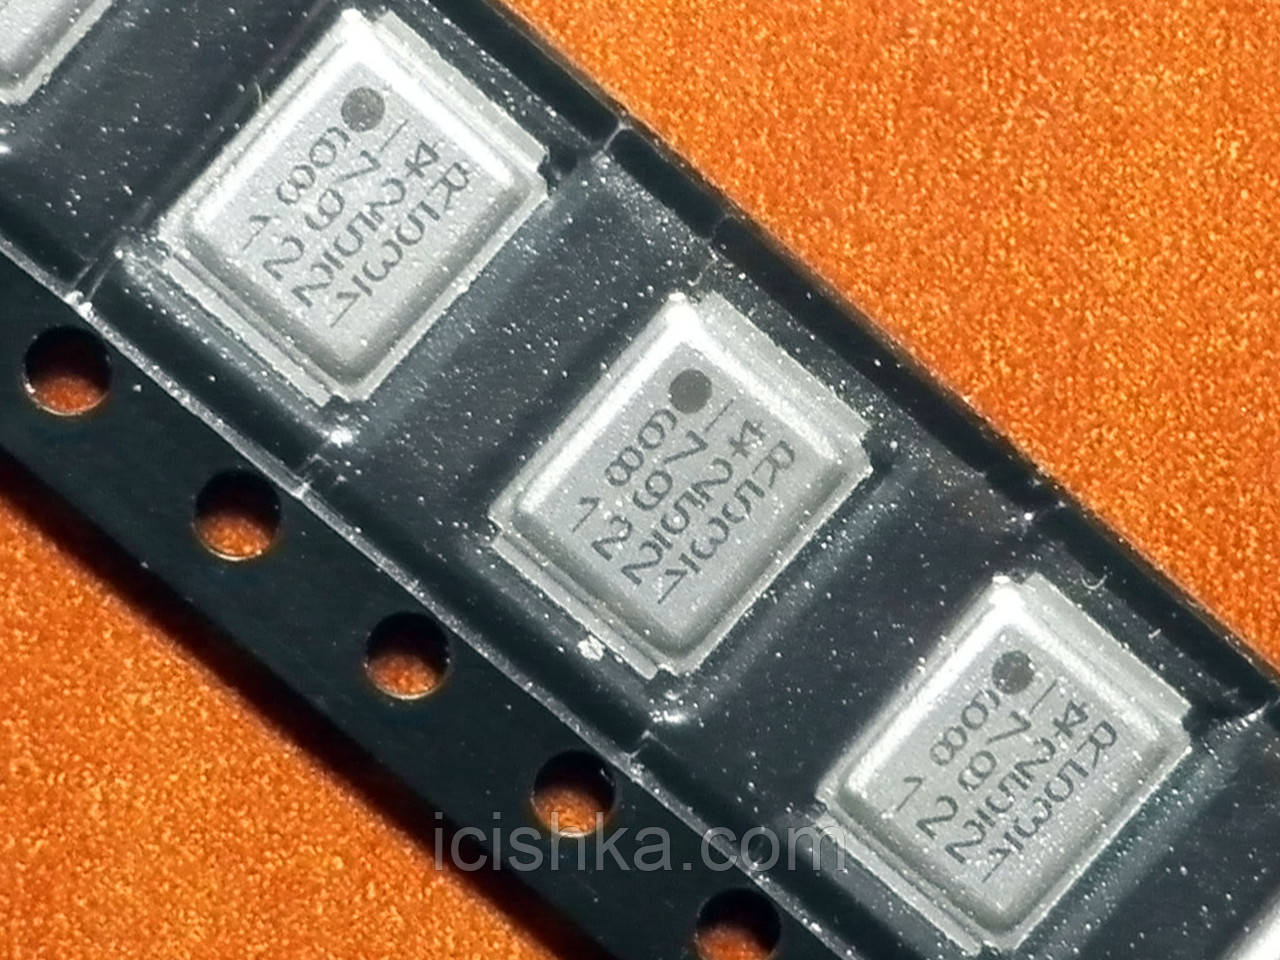 IRF6725 / 6725 / IRF6725MTRPBF - N-channel Power MOSFET